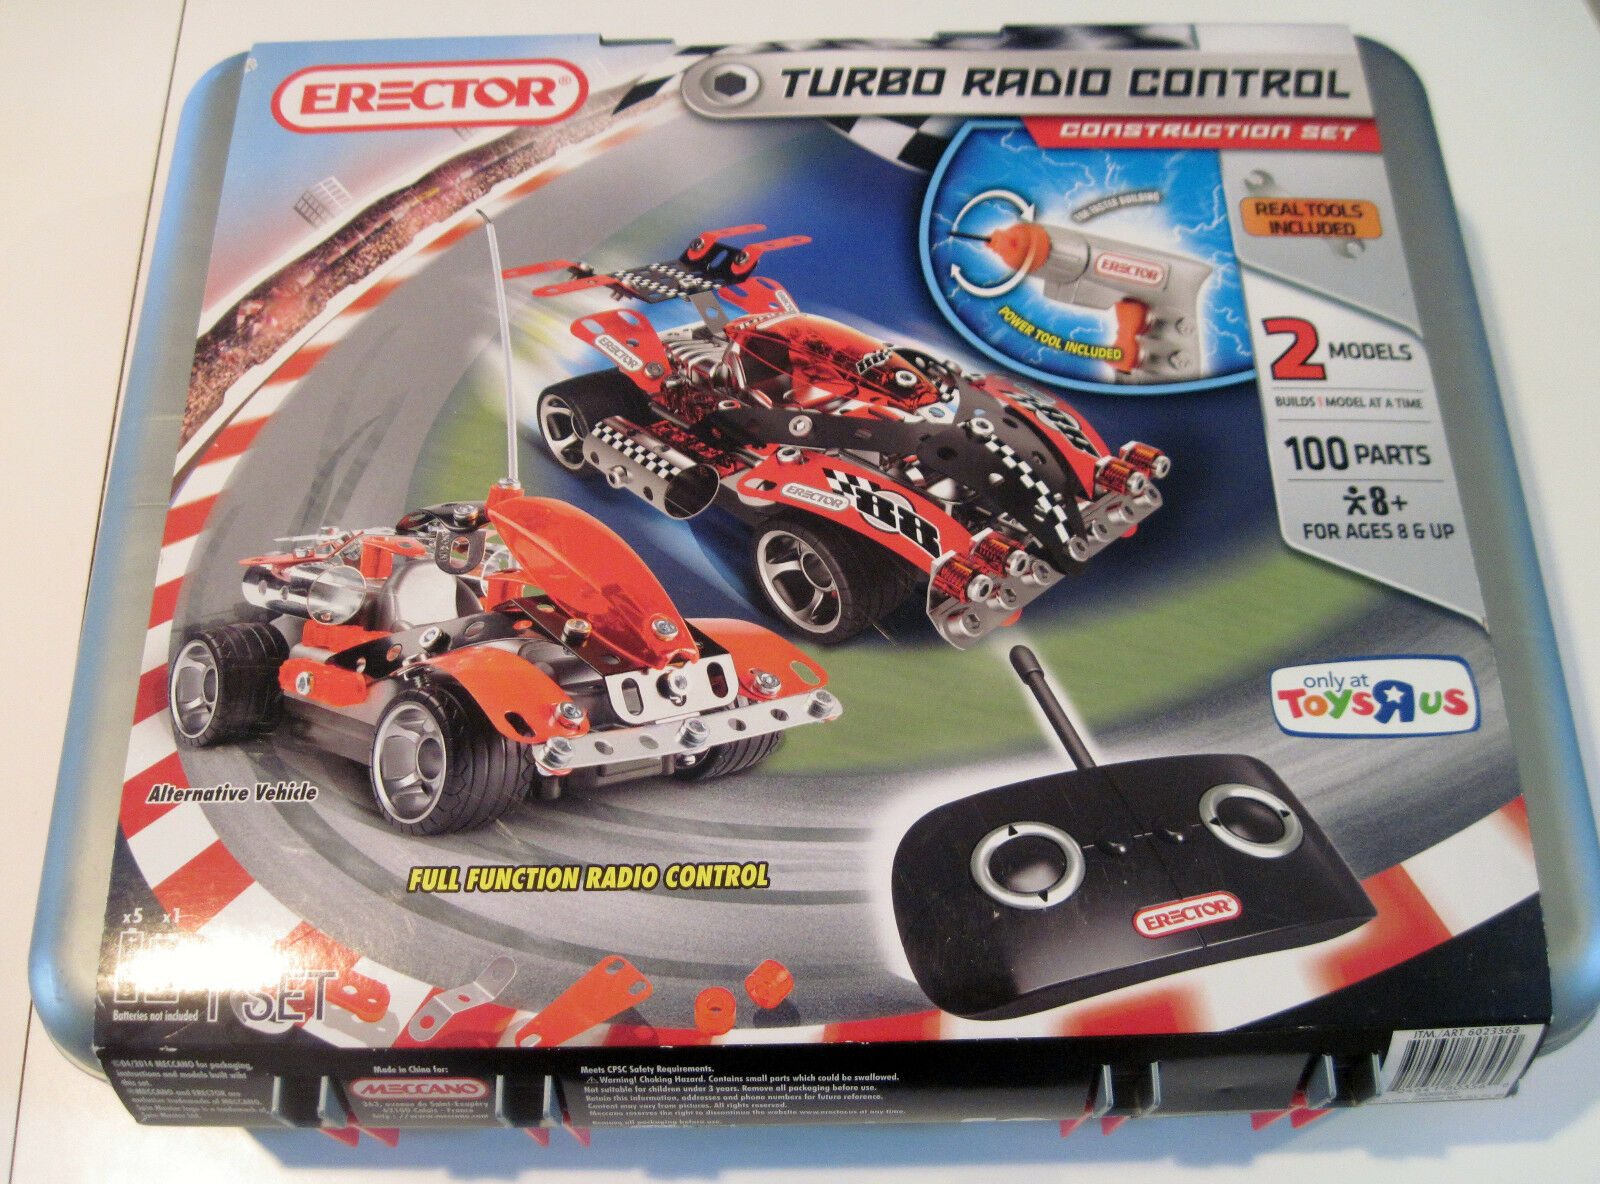 Erector Turbo Radio Control Construction Set in Red HARD CASE, Tear in Cover